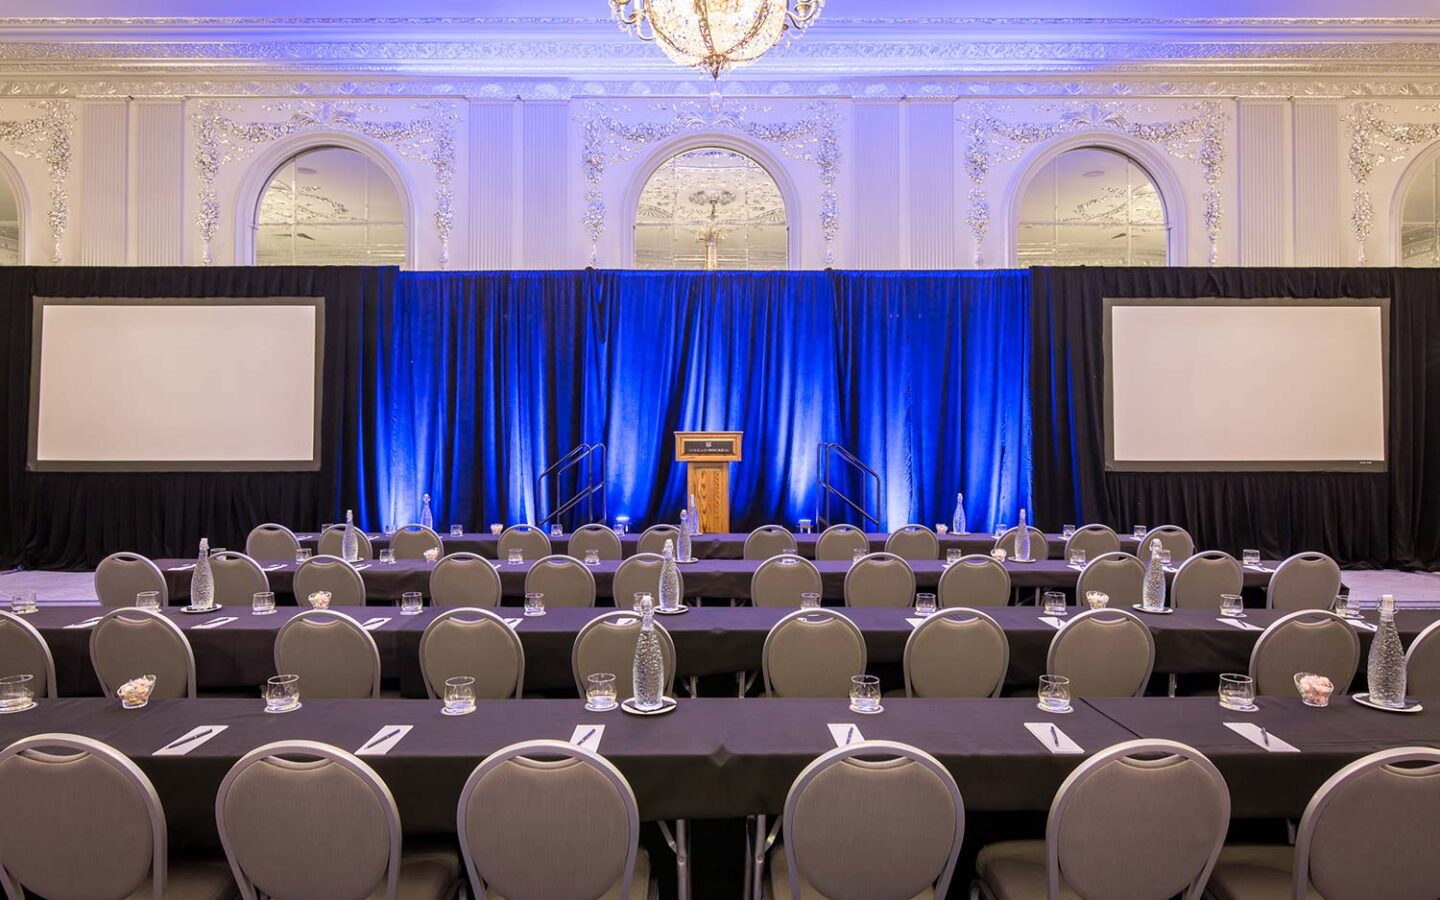 large ballroom event space with a stage and podium set up with rows of chairs in front of it